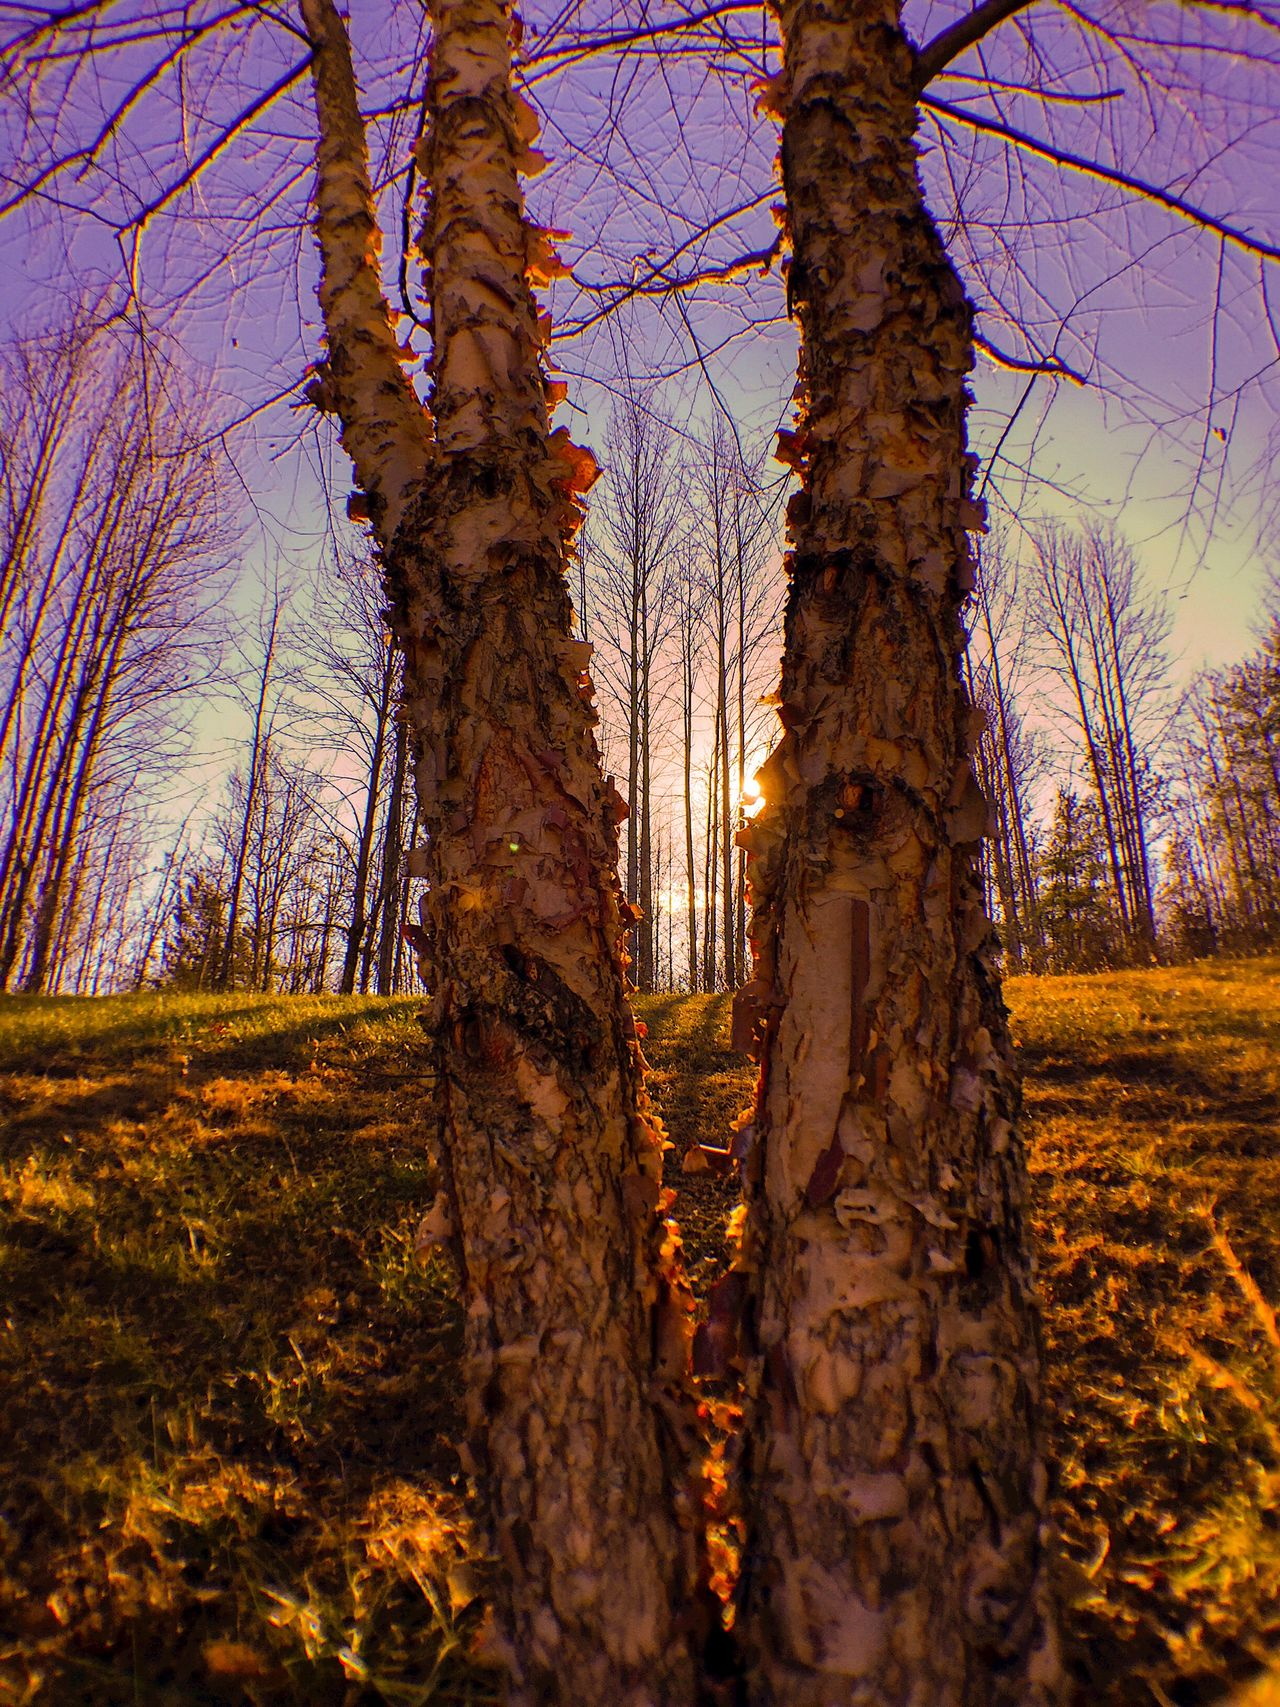 Nature Tree Beauty In Nature Outdoors Tranquil Scene Sky Growth No People Forest Tranquility Tree Trunk Still Life State Of Mind  From My Point Of View Still Life Photography